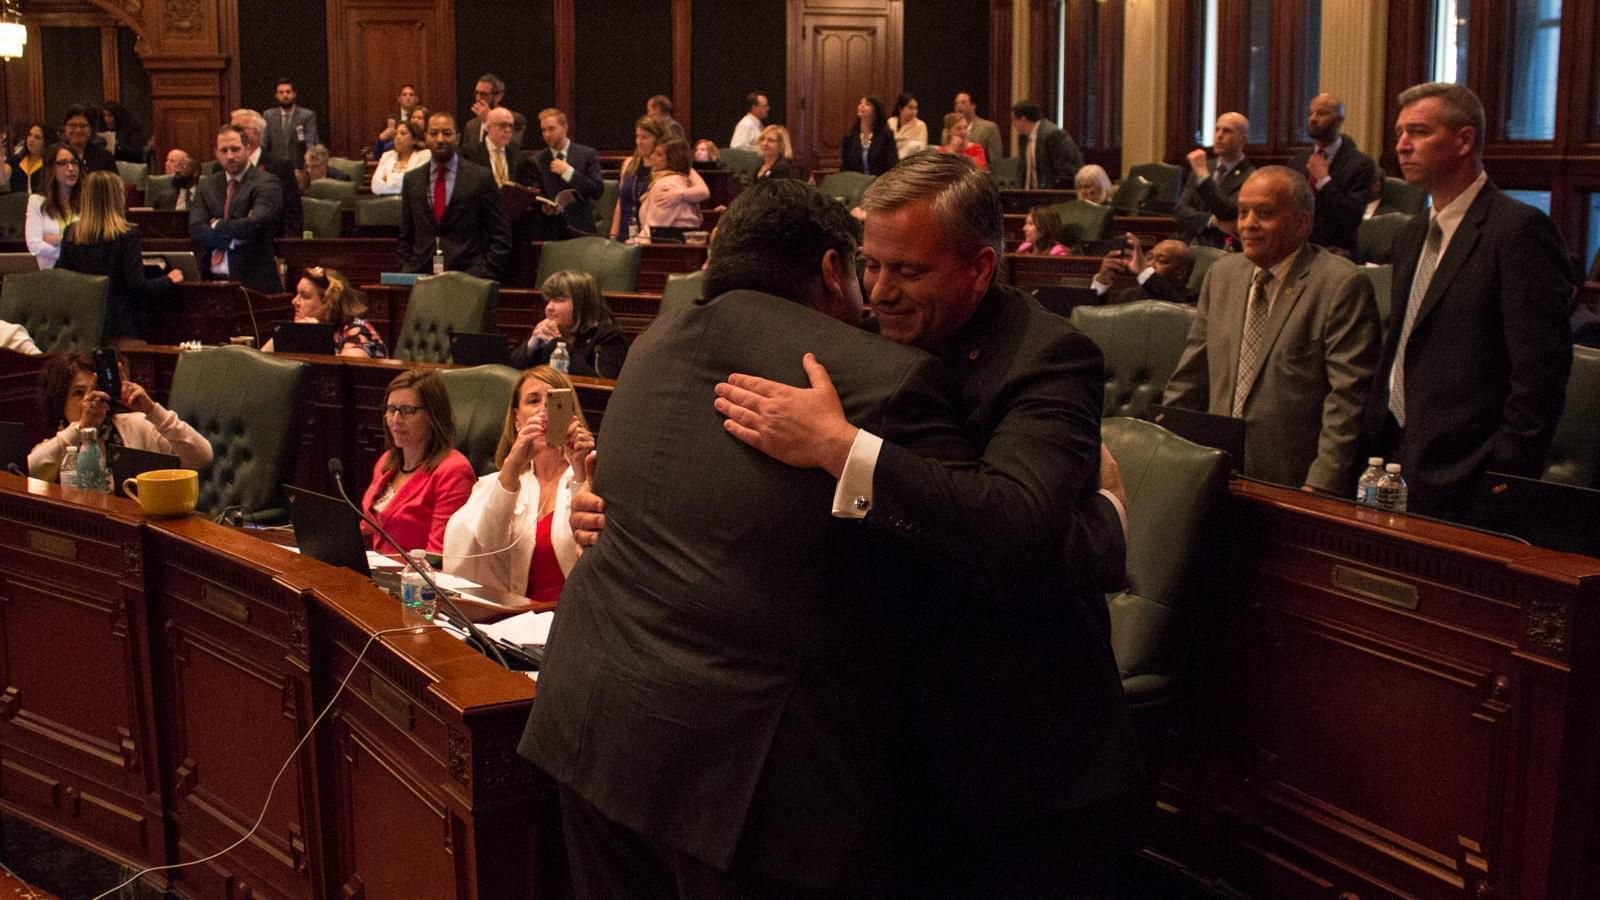 Gov. J.B. Pritzker, left, hugs state Rep. Robert Martwick after passage of a constitutional amendment to allow for a graduated income tax in Illinois.